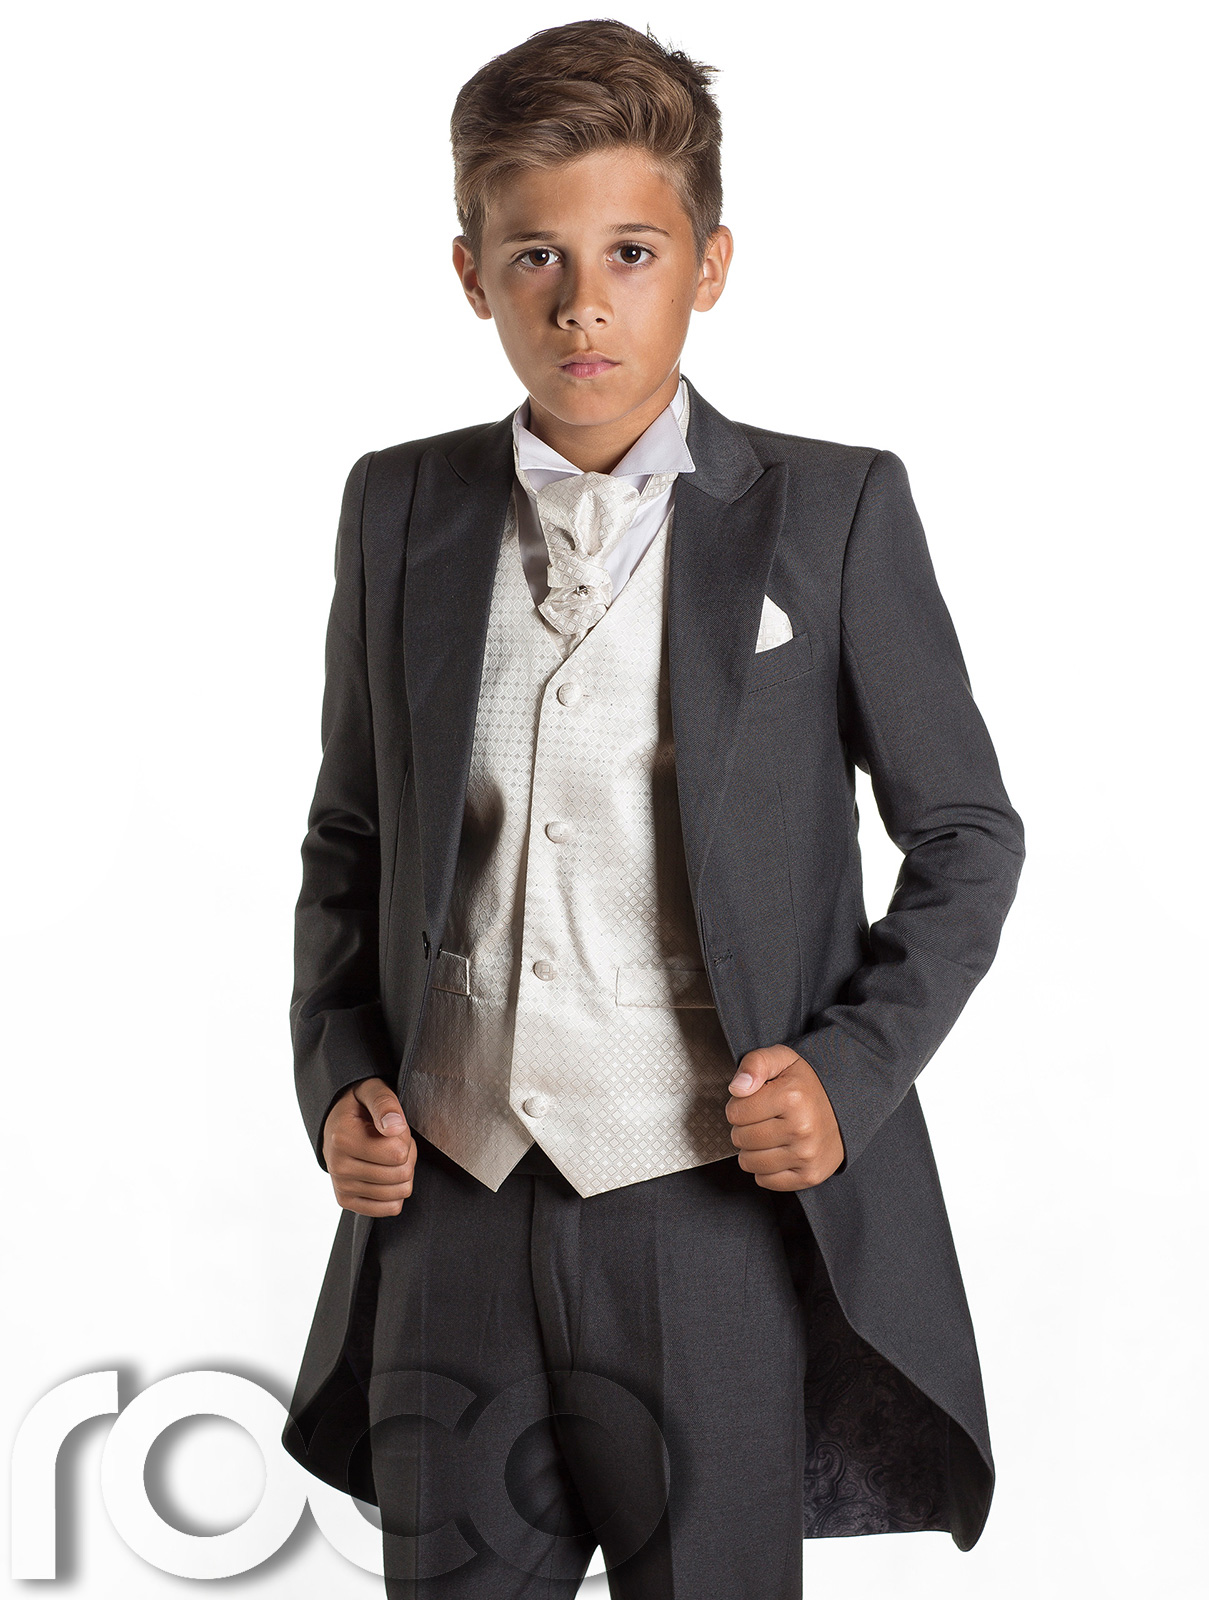 Boys Grey Tail Suit, Prom Suit, Page Boy Suit, Boys Black Suit, Boys ...